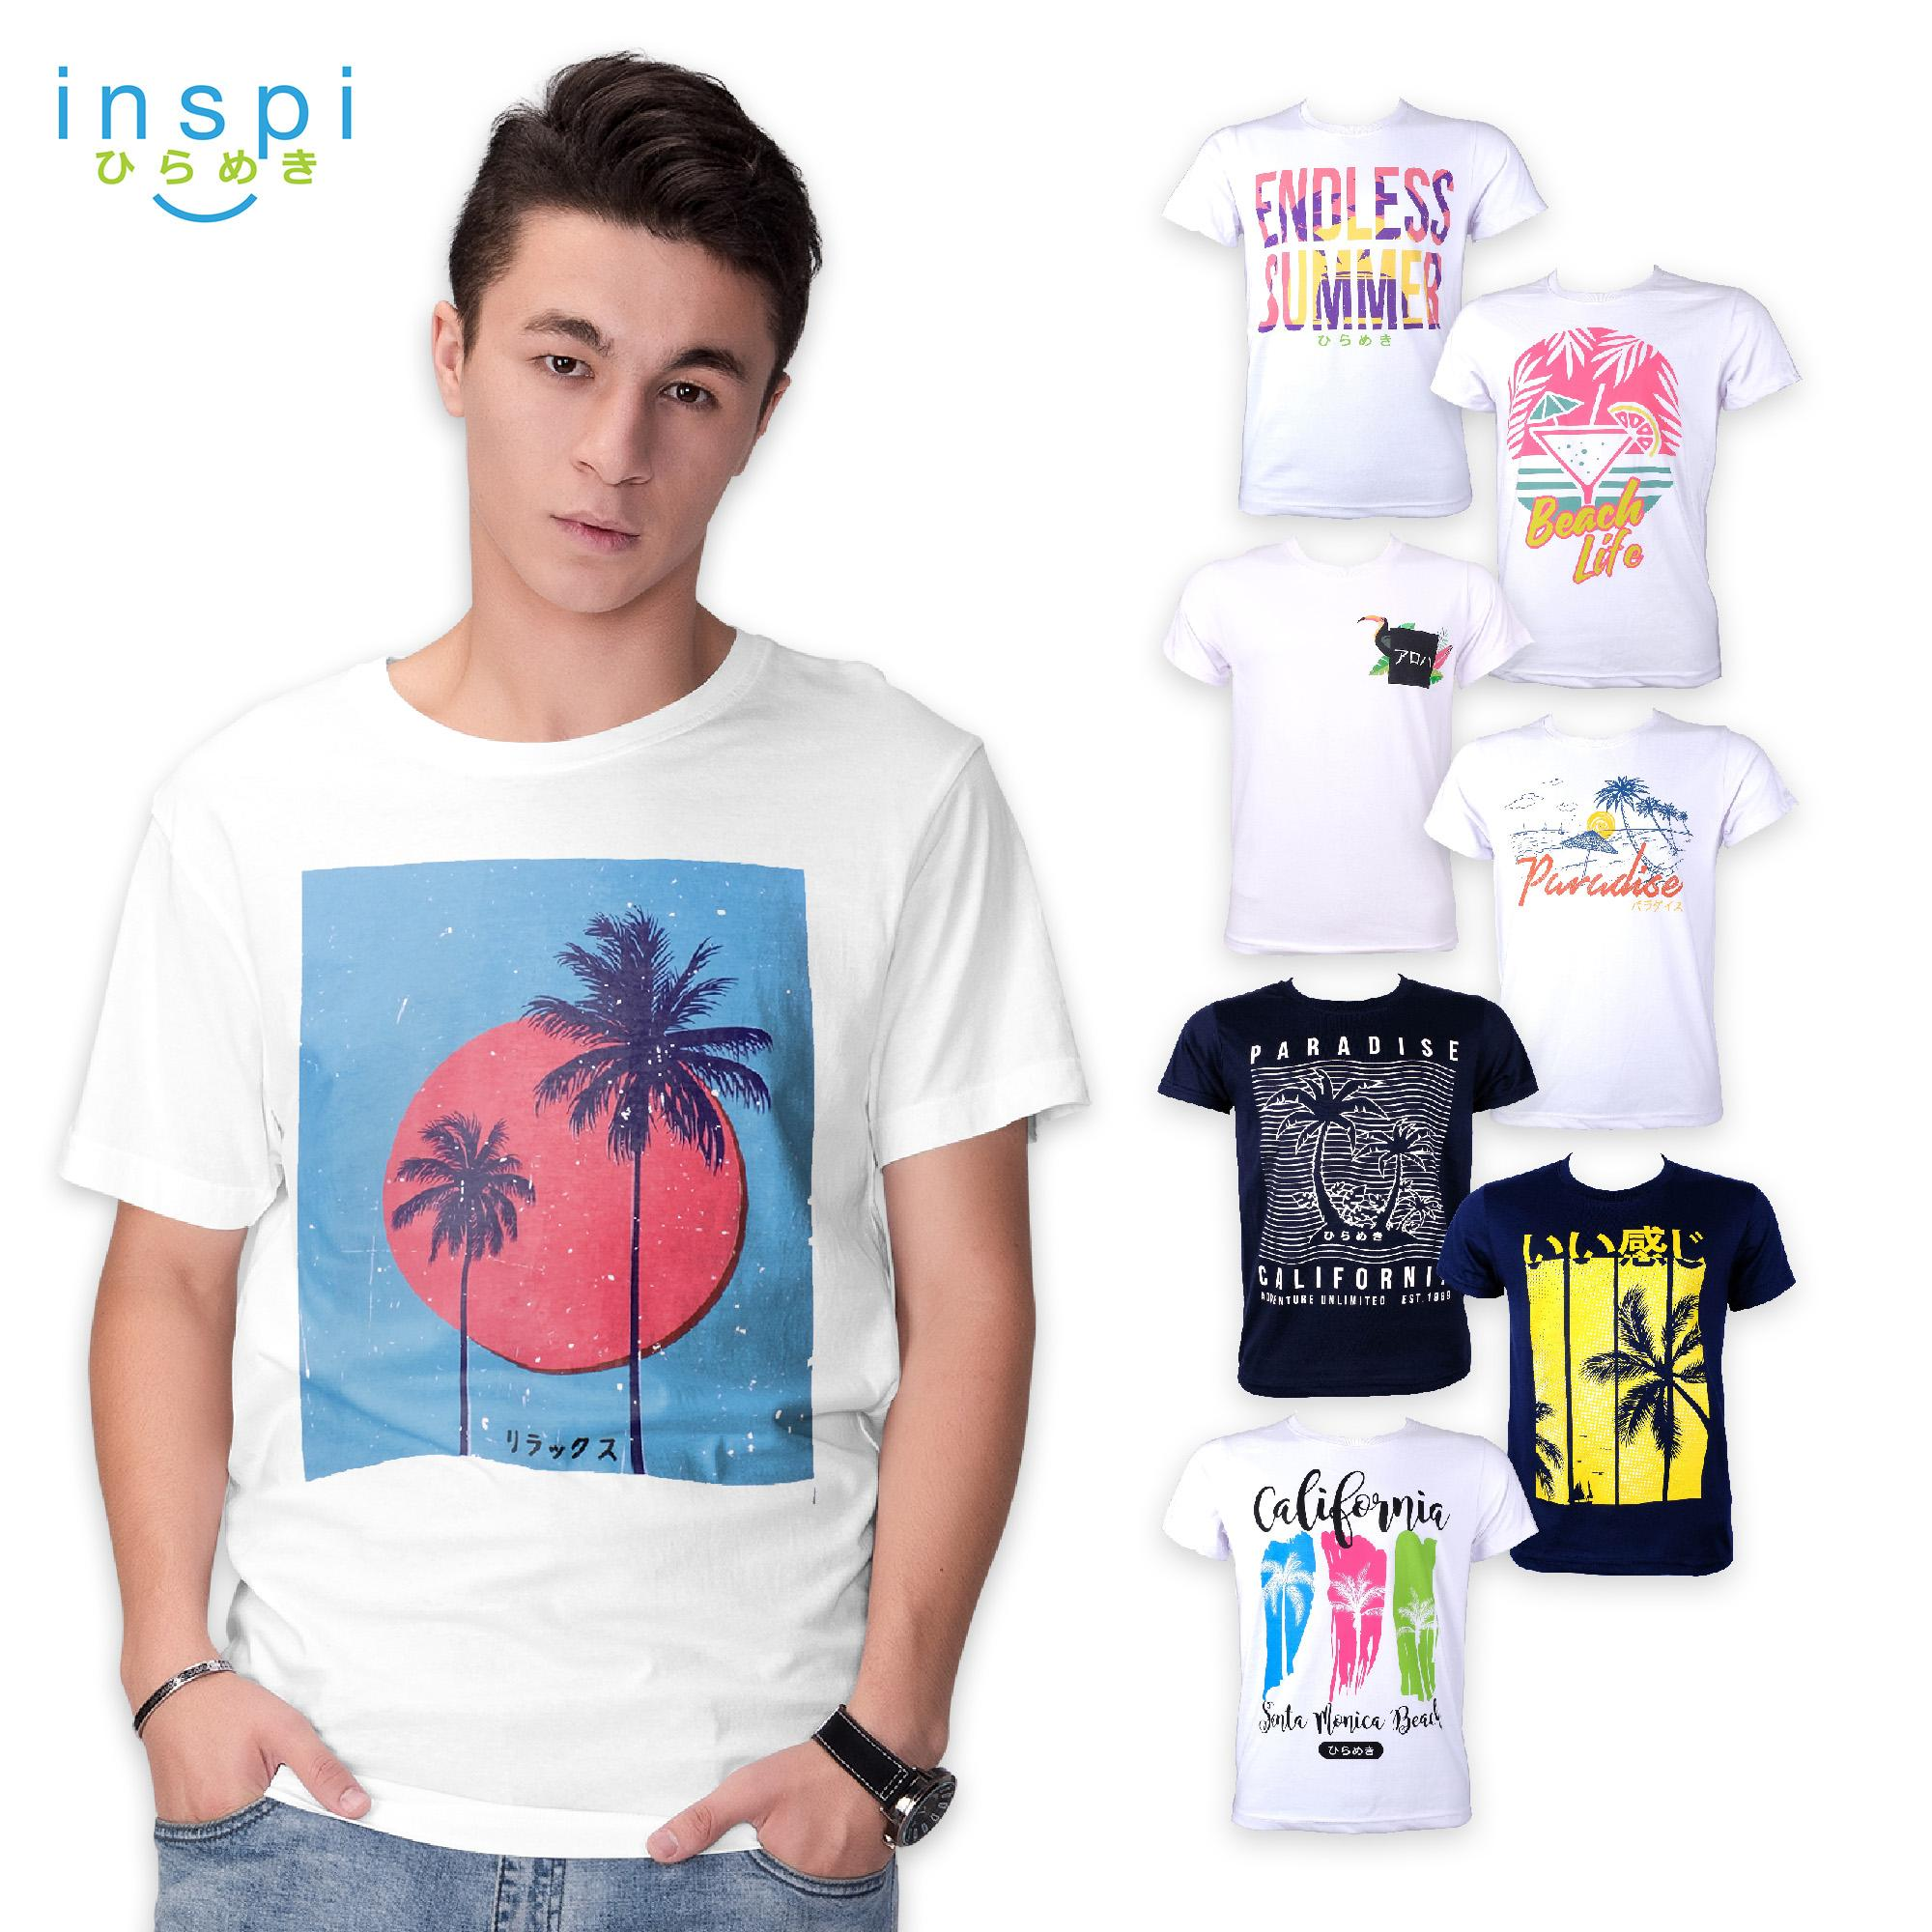 8fe5e4d1ab9 INSPI Tees Summer Collection tshirt printed graphic tee Mens t shirt shirts  for men tshirts sale